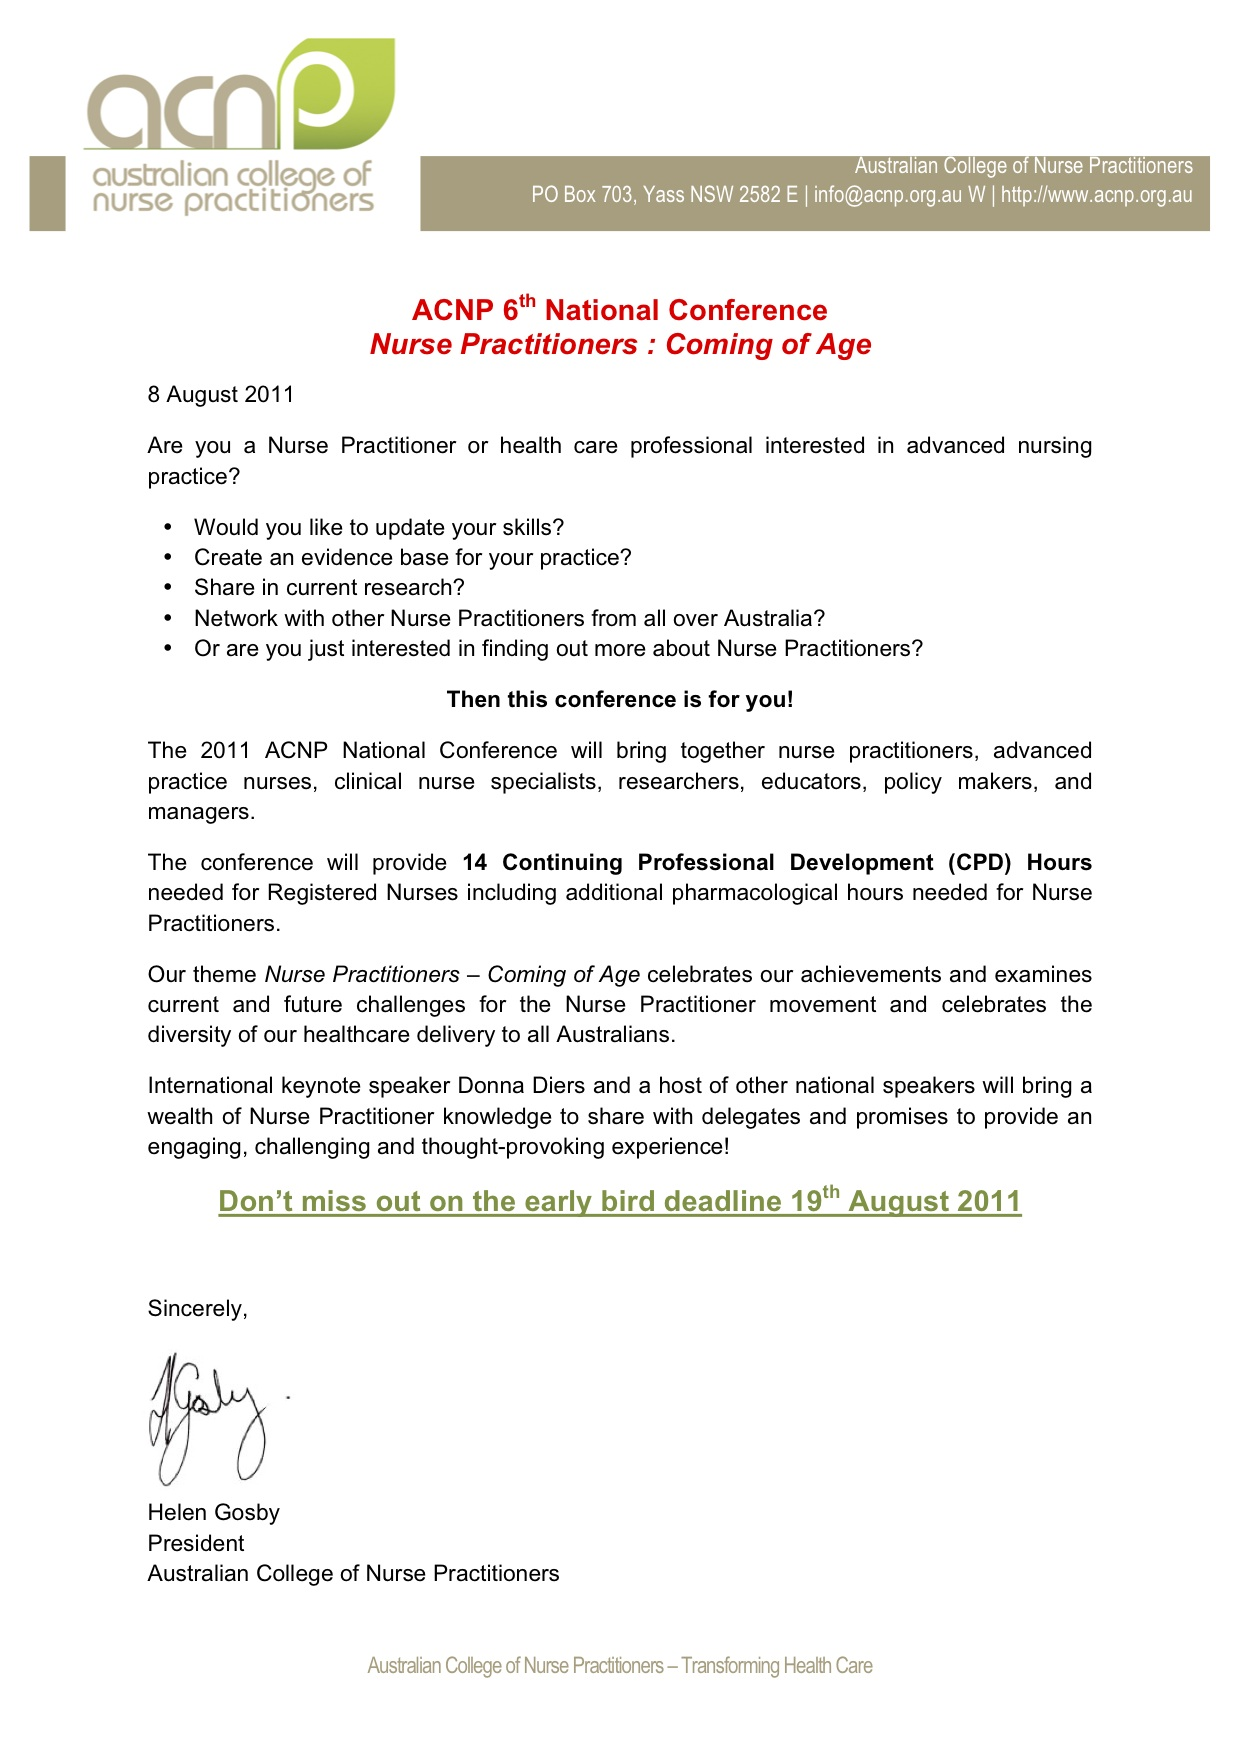 Australian College Of Nurse Practitioners 2011 National